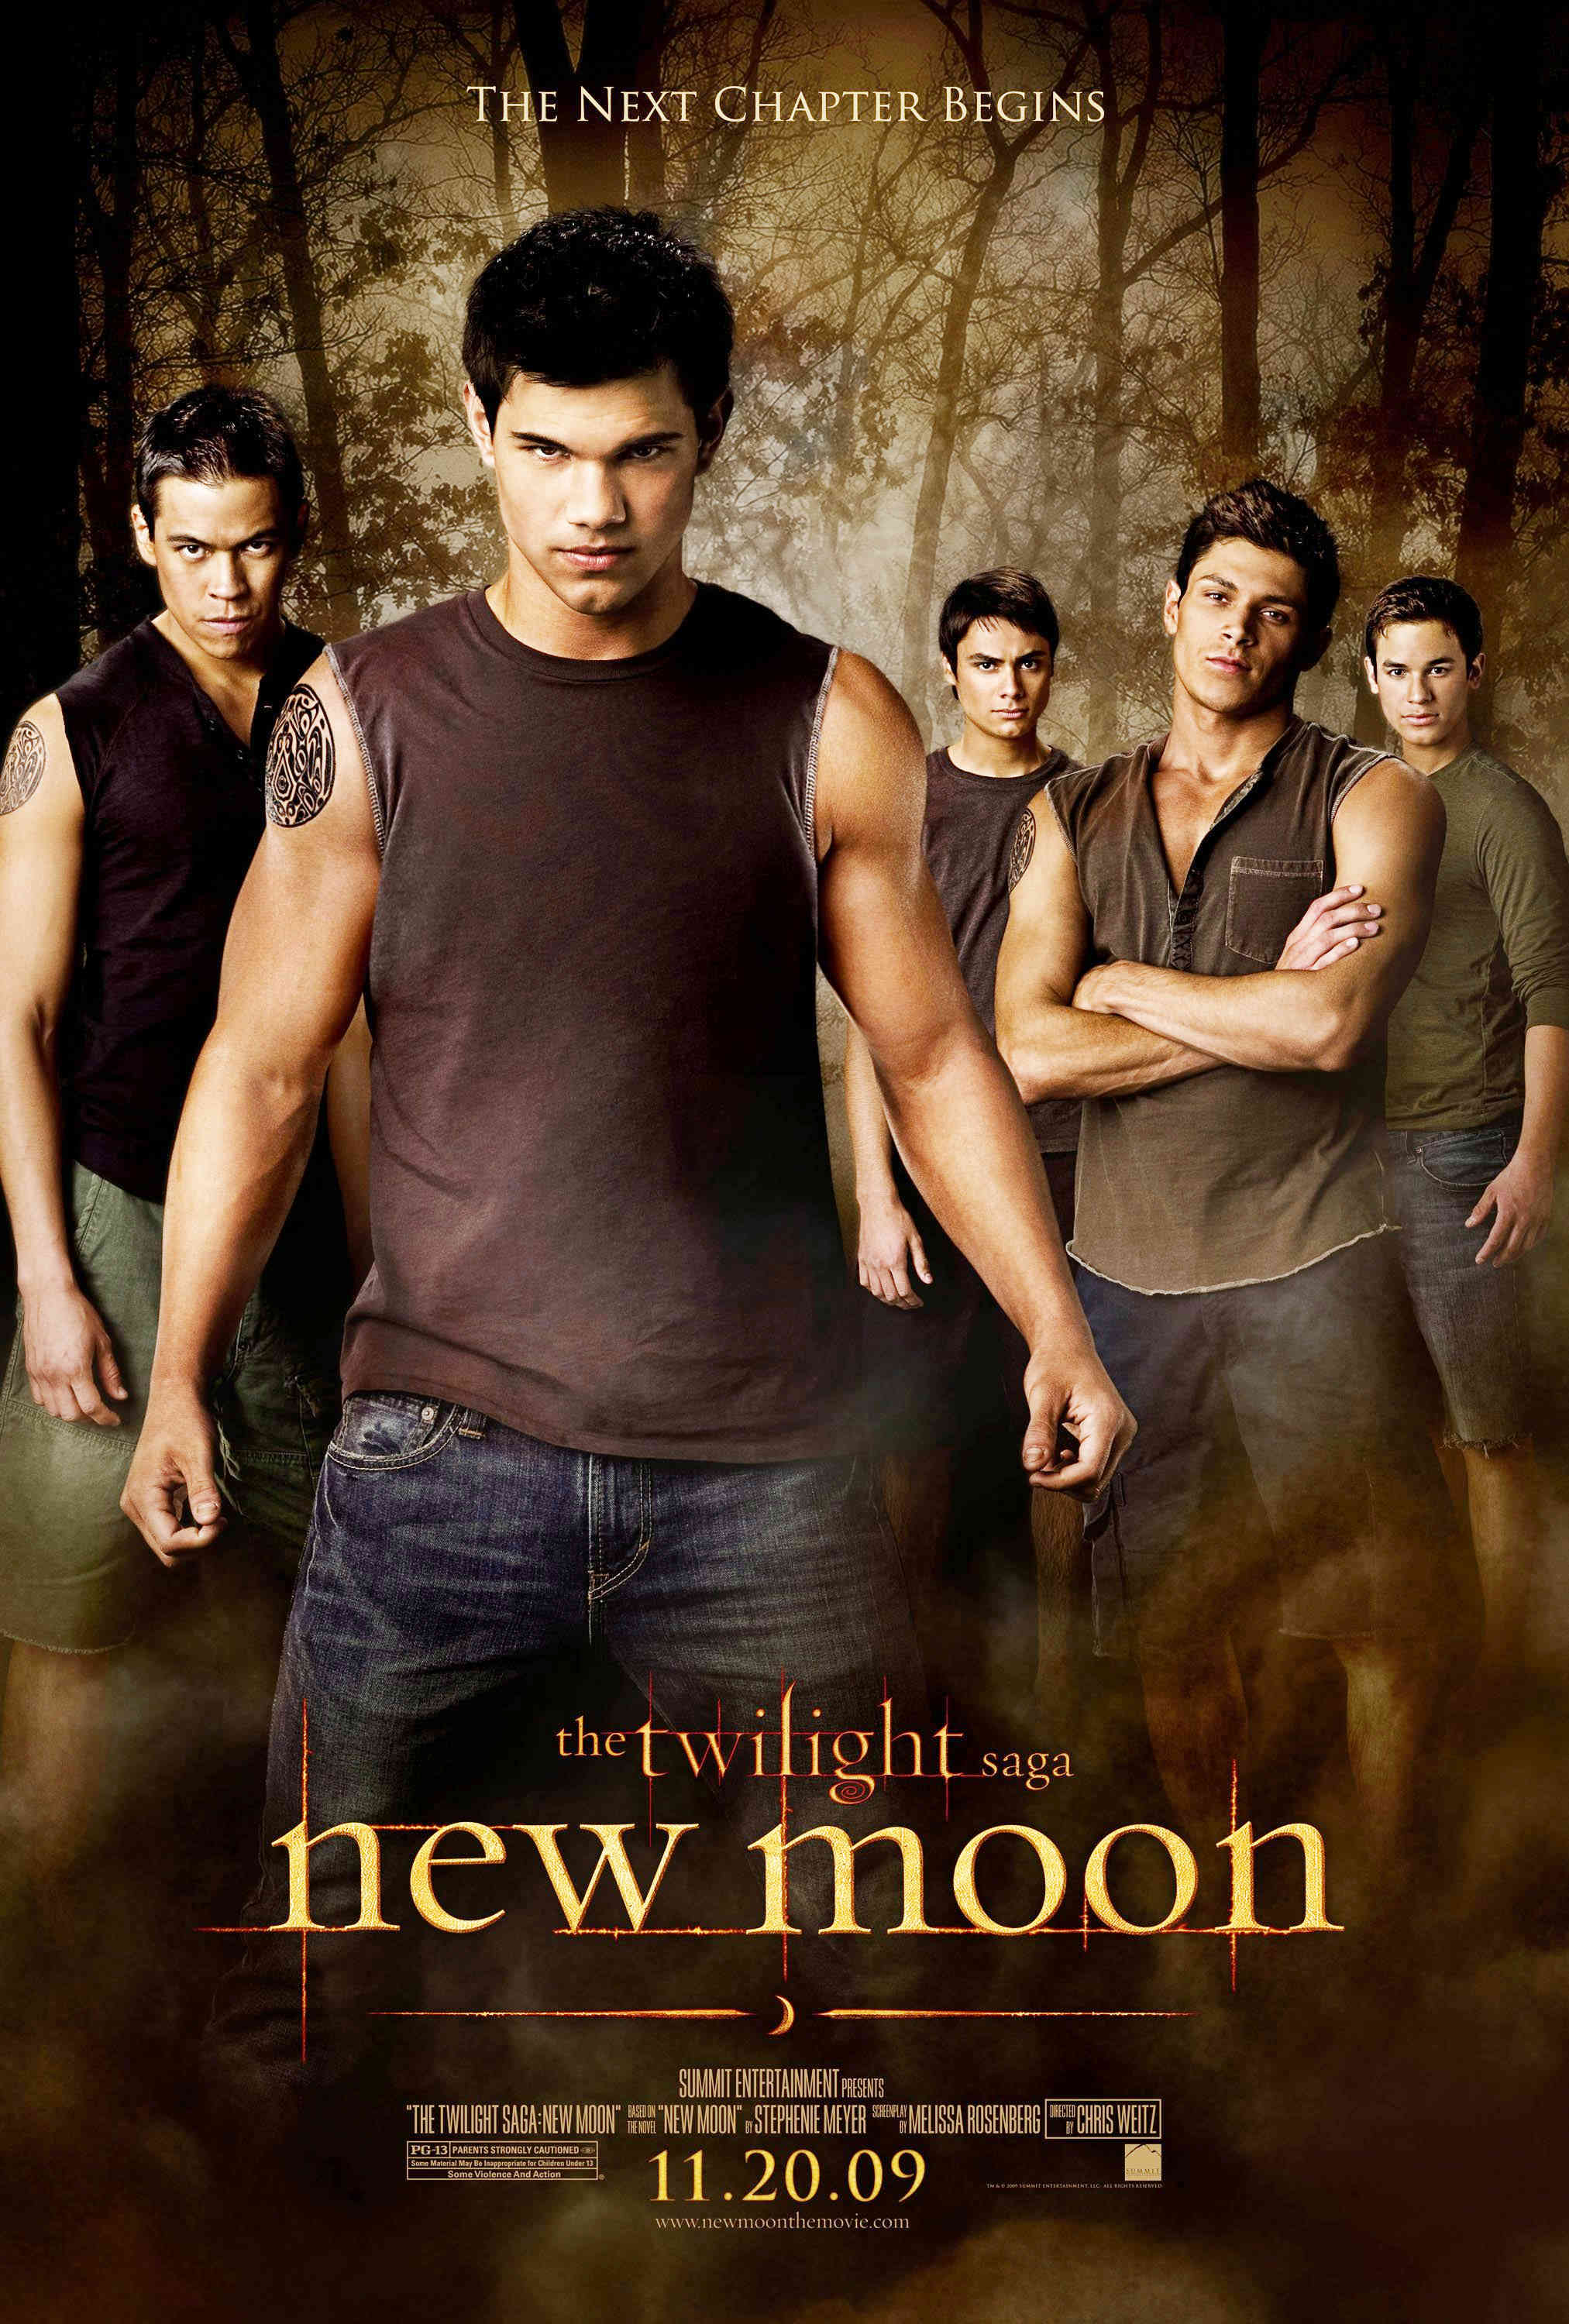 twilight_saga_new_moon_poster_2009_01.jpg